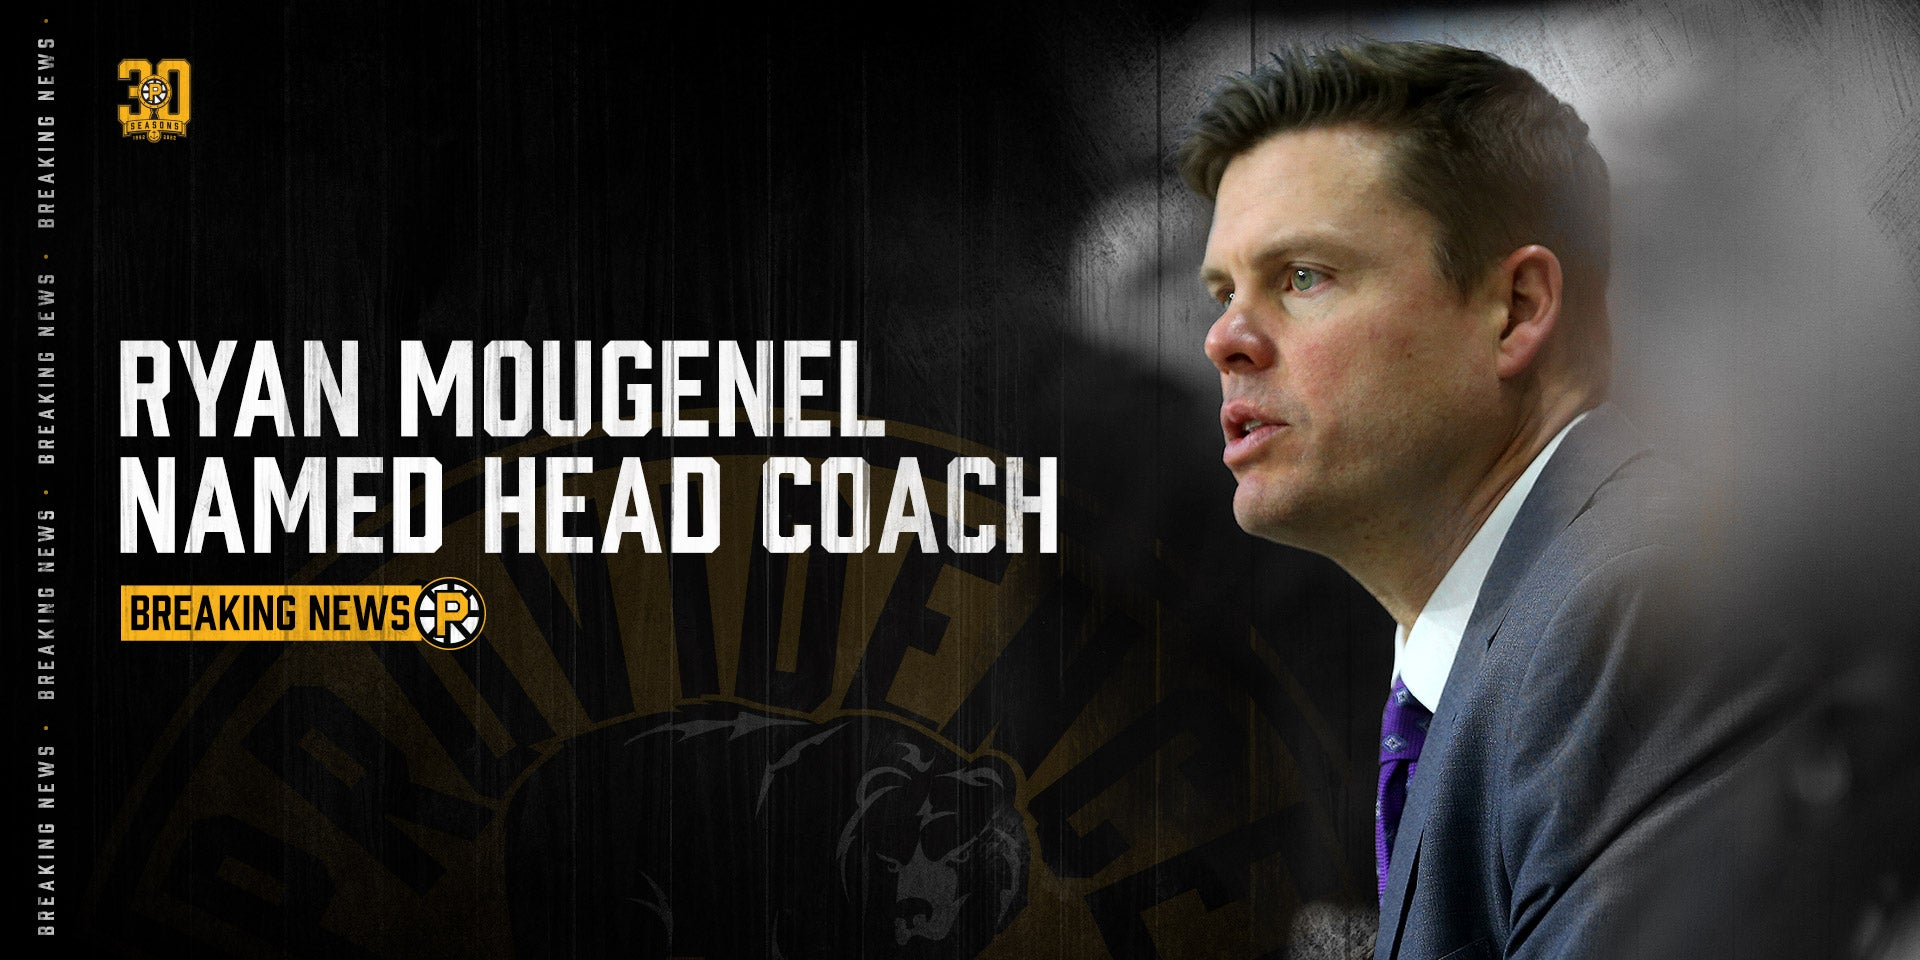 RYAN MOUGENEL NAMED 13TH HEAD COACH OF THE PROVIDENCE BRUINS